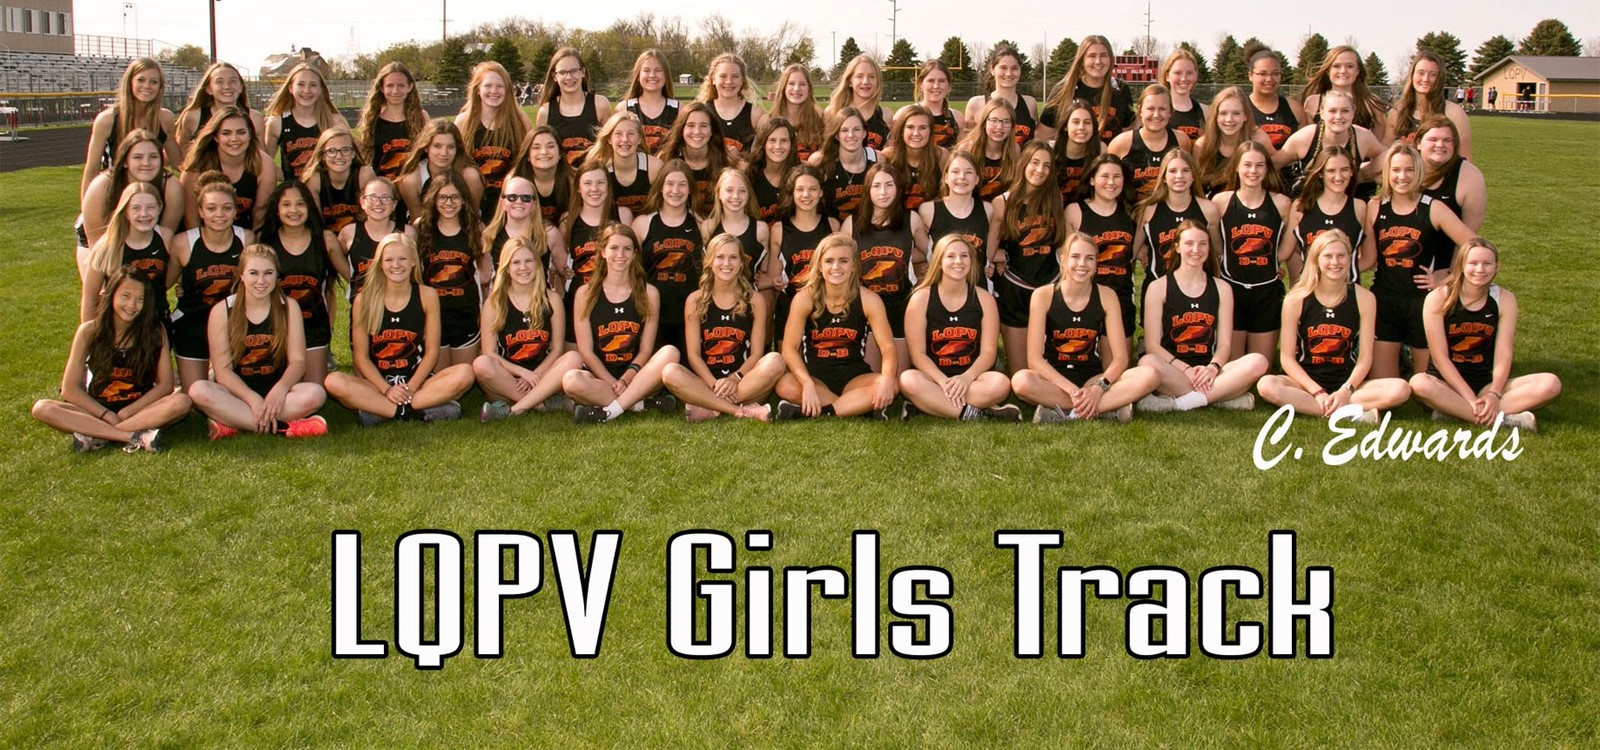 LQPV-DB Girls Track